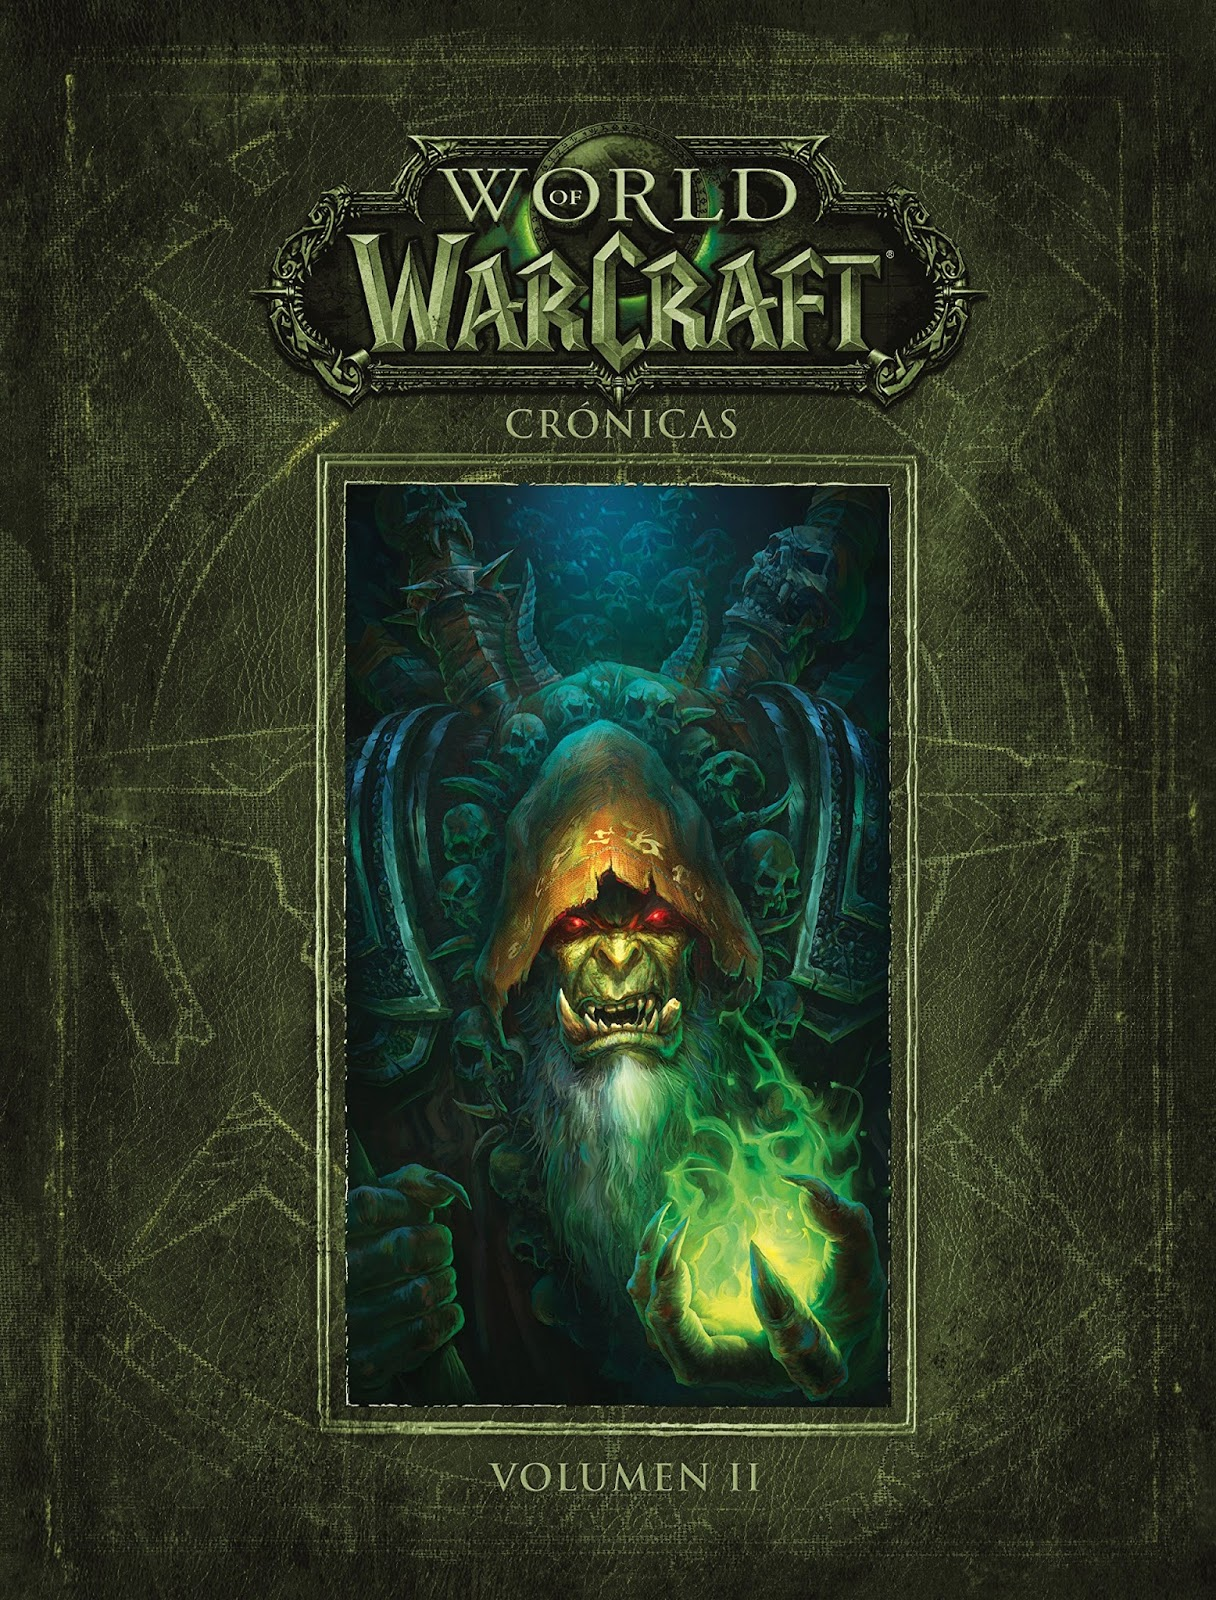 Libros De World Of Warcraft World Of Warcraft Cronicas Volumen 2 Book Depot